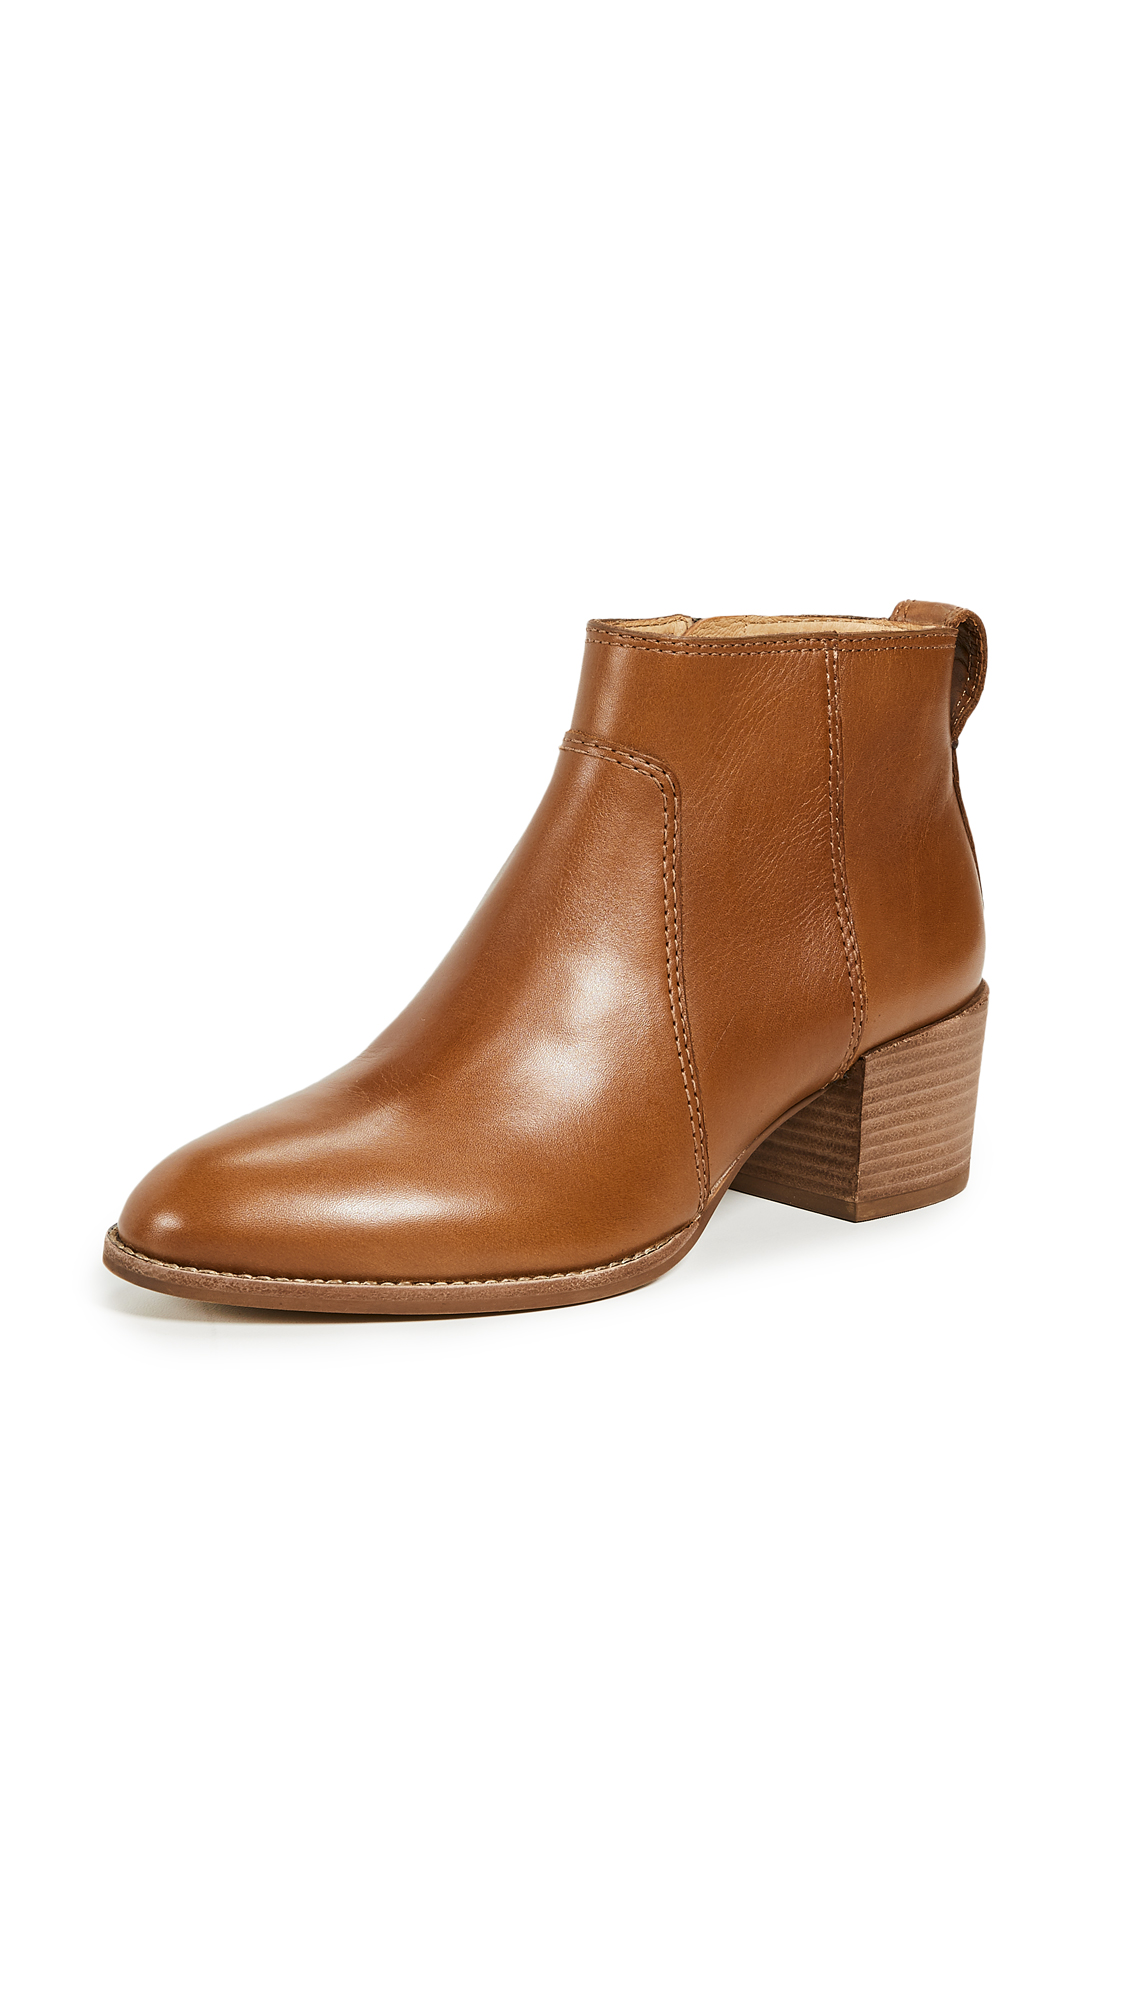 Madewell The Asher Boot - English Saddle